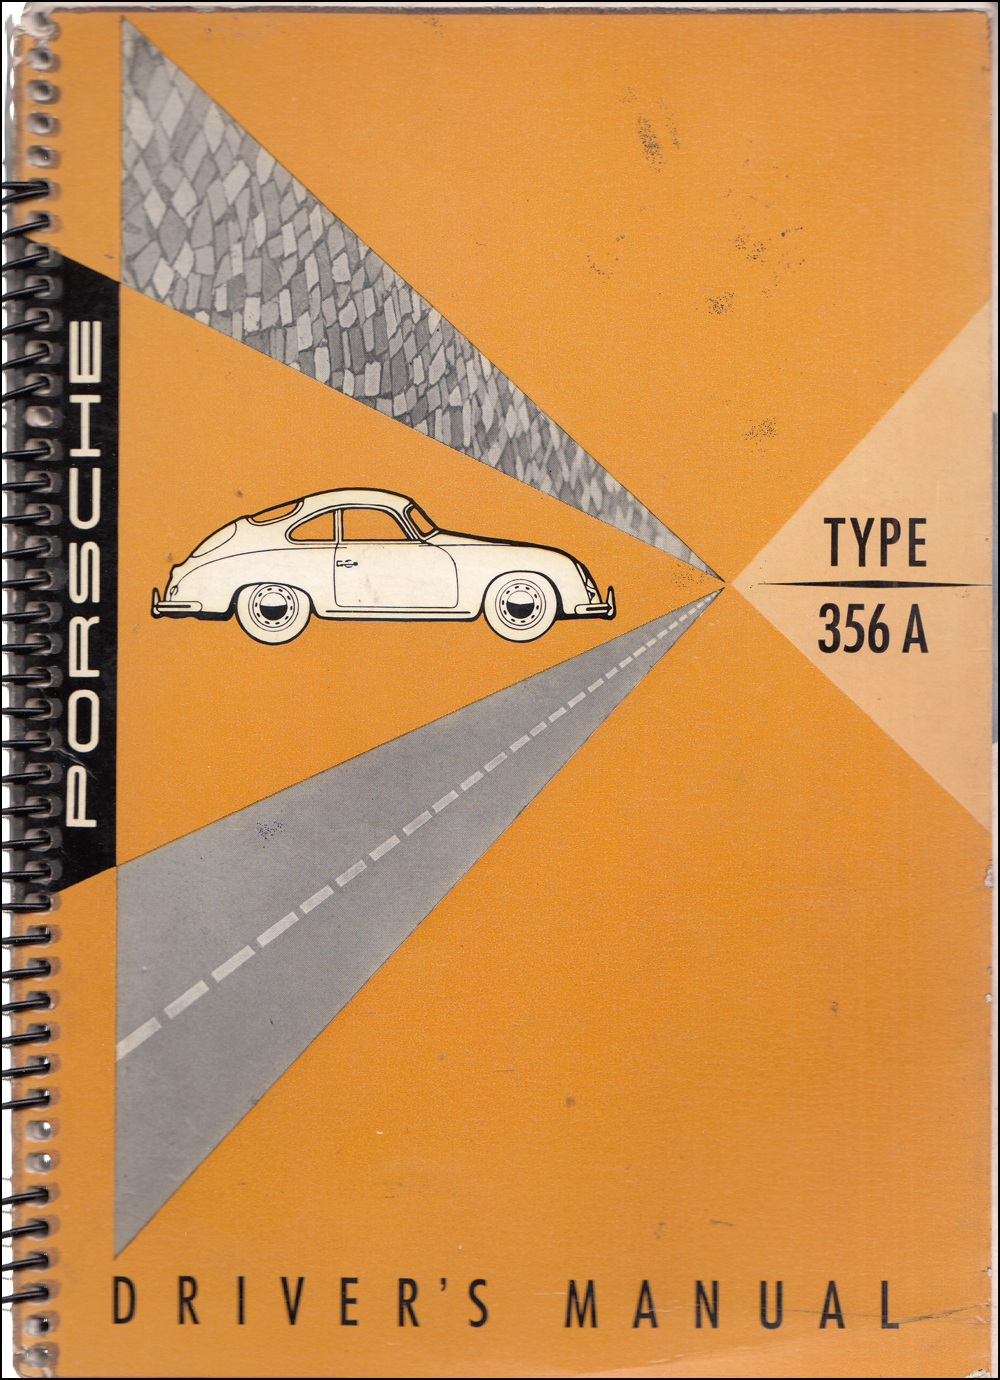 hight resolution of 1956 1959 porsche 356 a owner s manual originalm sept 57 edition printed 5 58 239 00